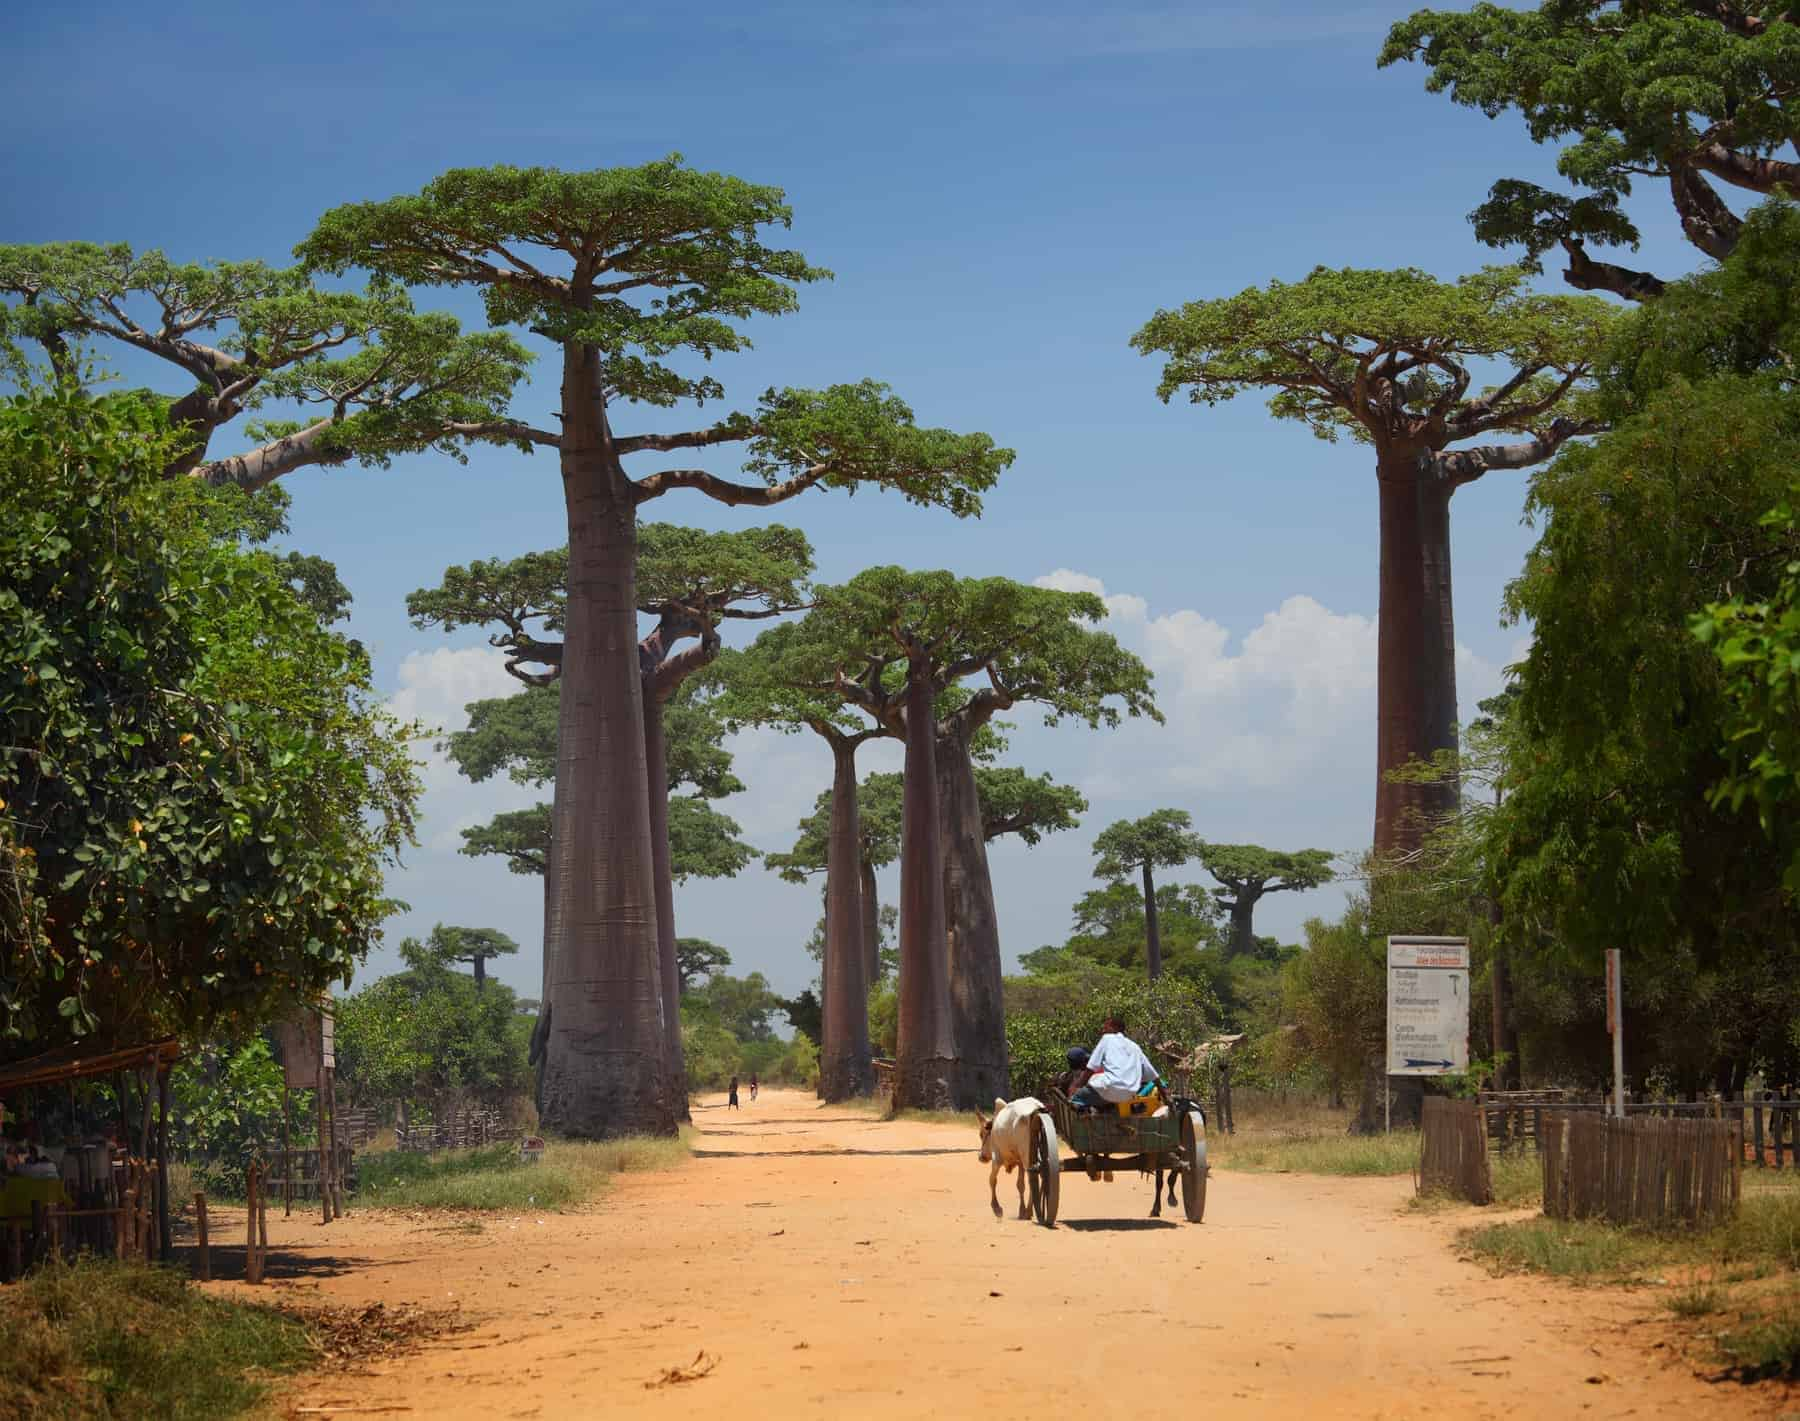 Baobabs and rural road in Africa at sunny day. Madagascar